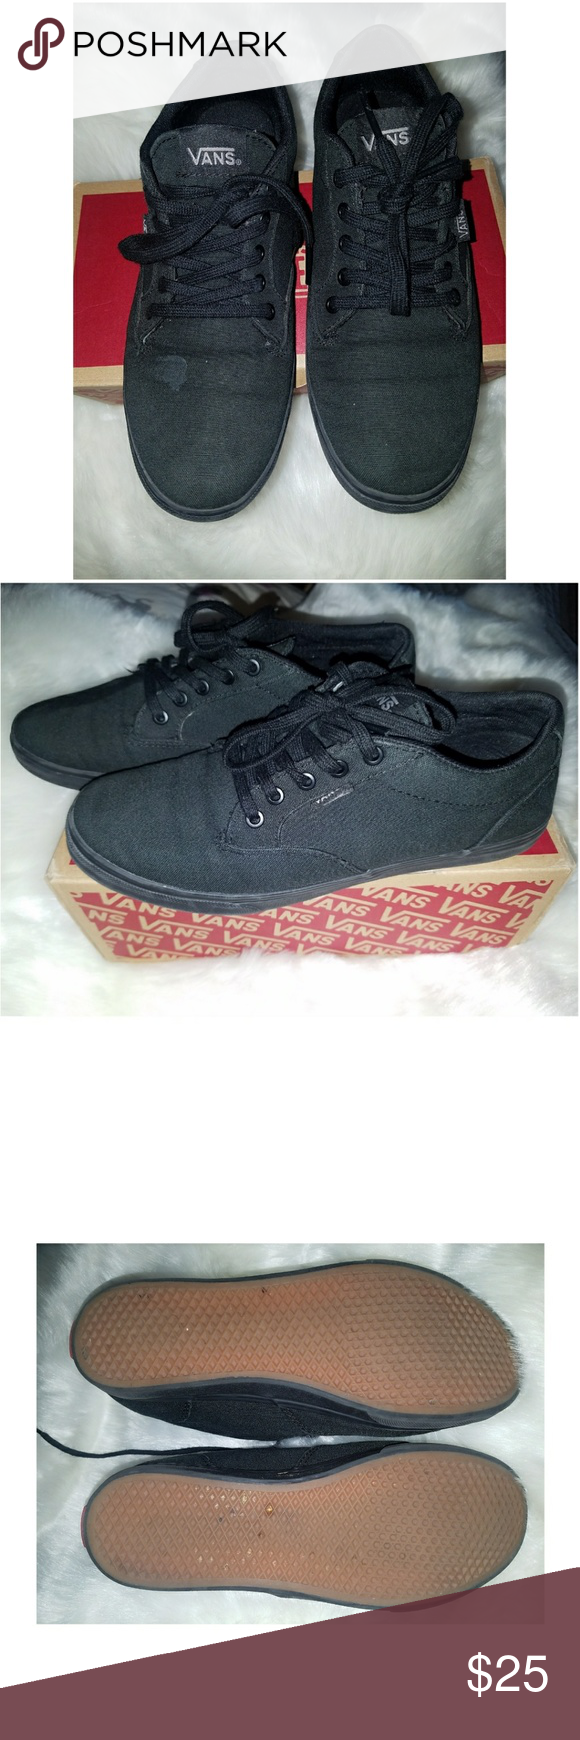 62f5435ff0 Vans size 7 women Vans Winston in black   has a small stain in front on the  right side shoe Vans Shoes Sneakers